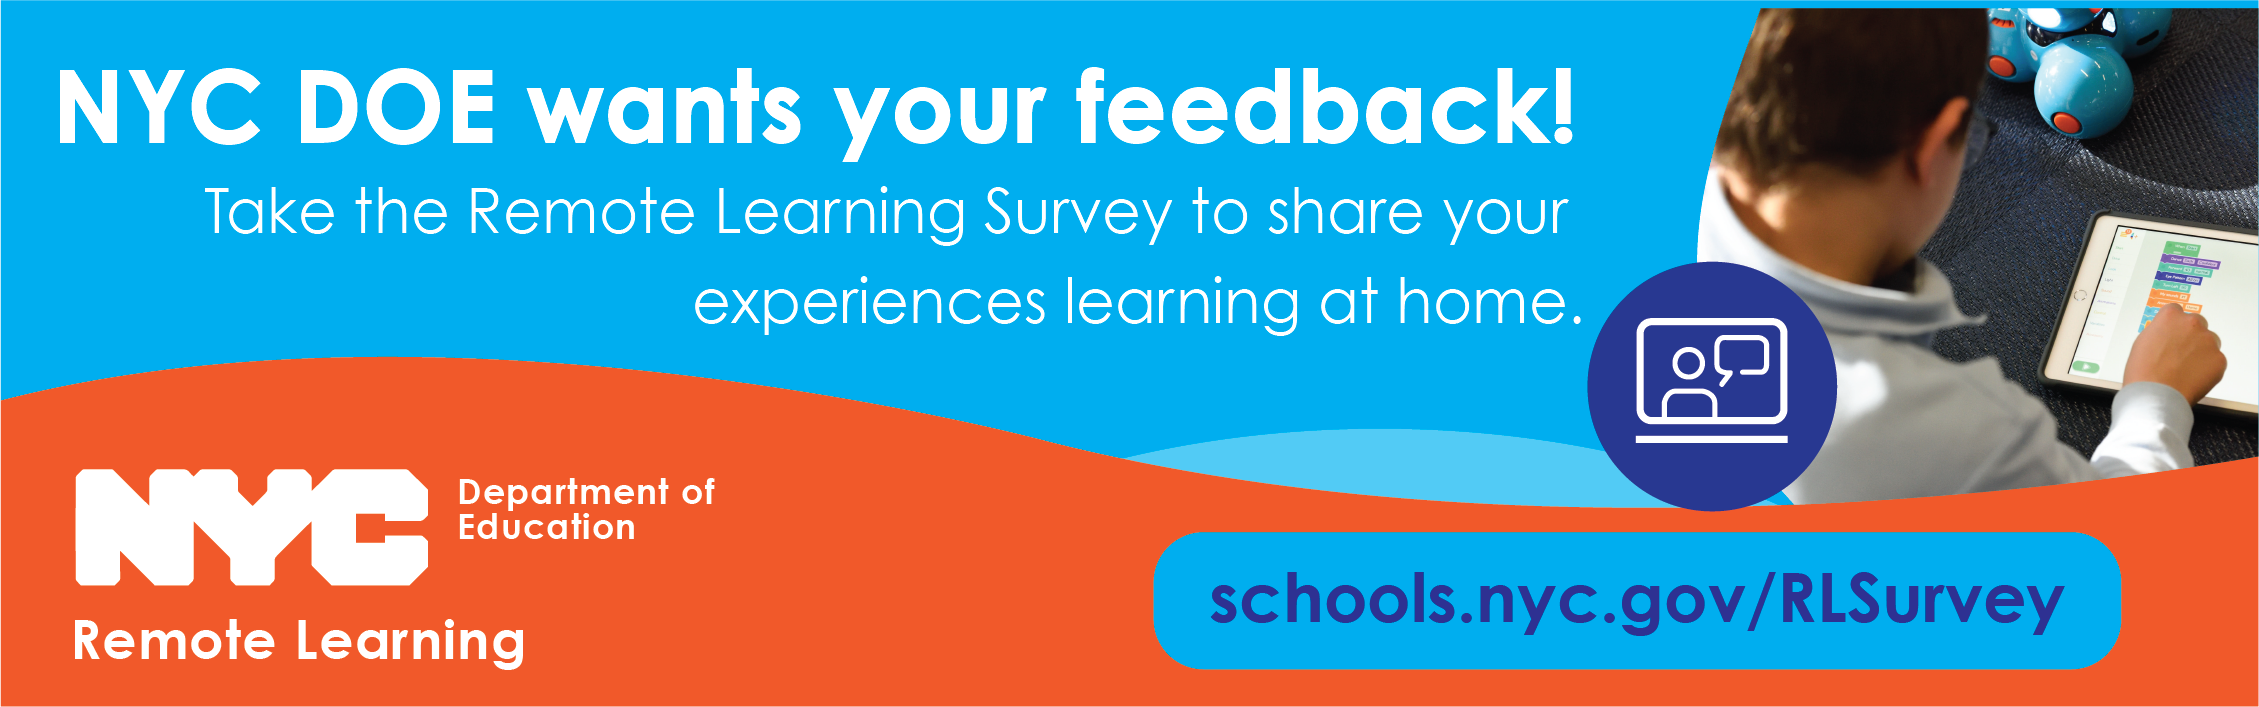 NYC DOE wants your feedback graphic about remote learning. Blue circle with a computer screen icon with a speaking blurb, photo a  child looking over his shoulder as he uses a tablet.